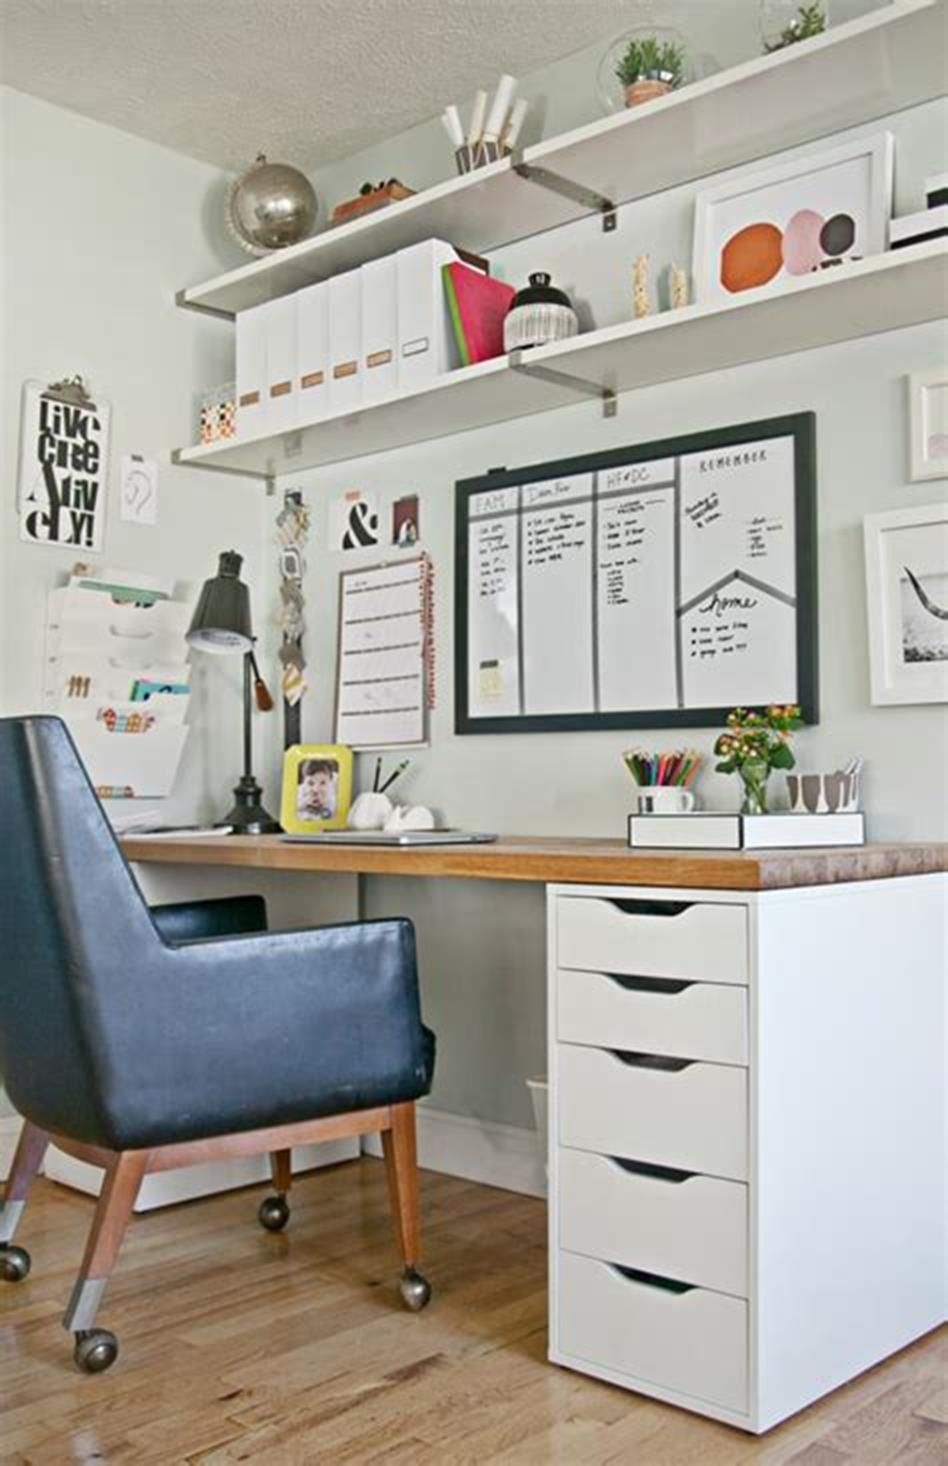 28 Best Small Space Office Decorating Ideas On a Budget 28 28